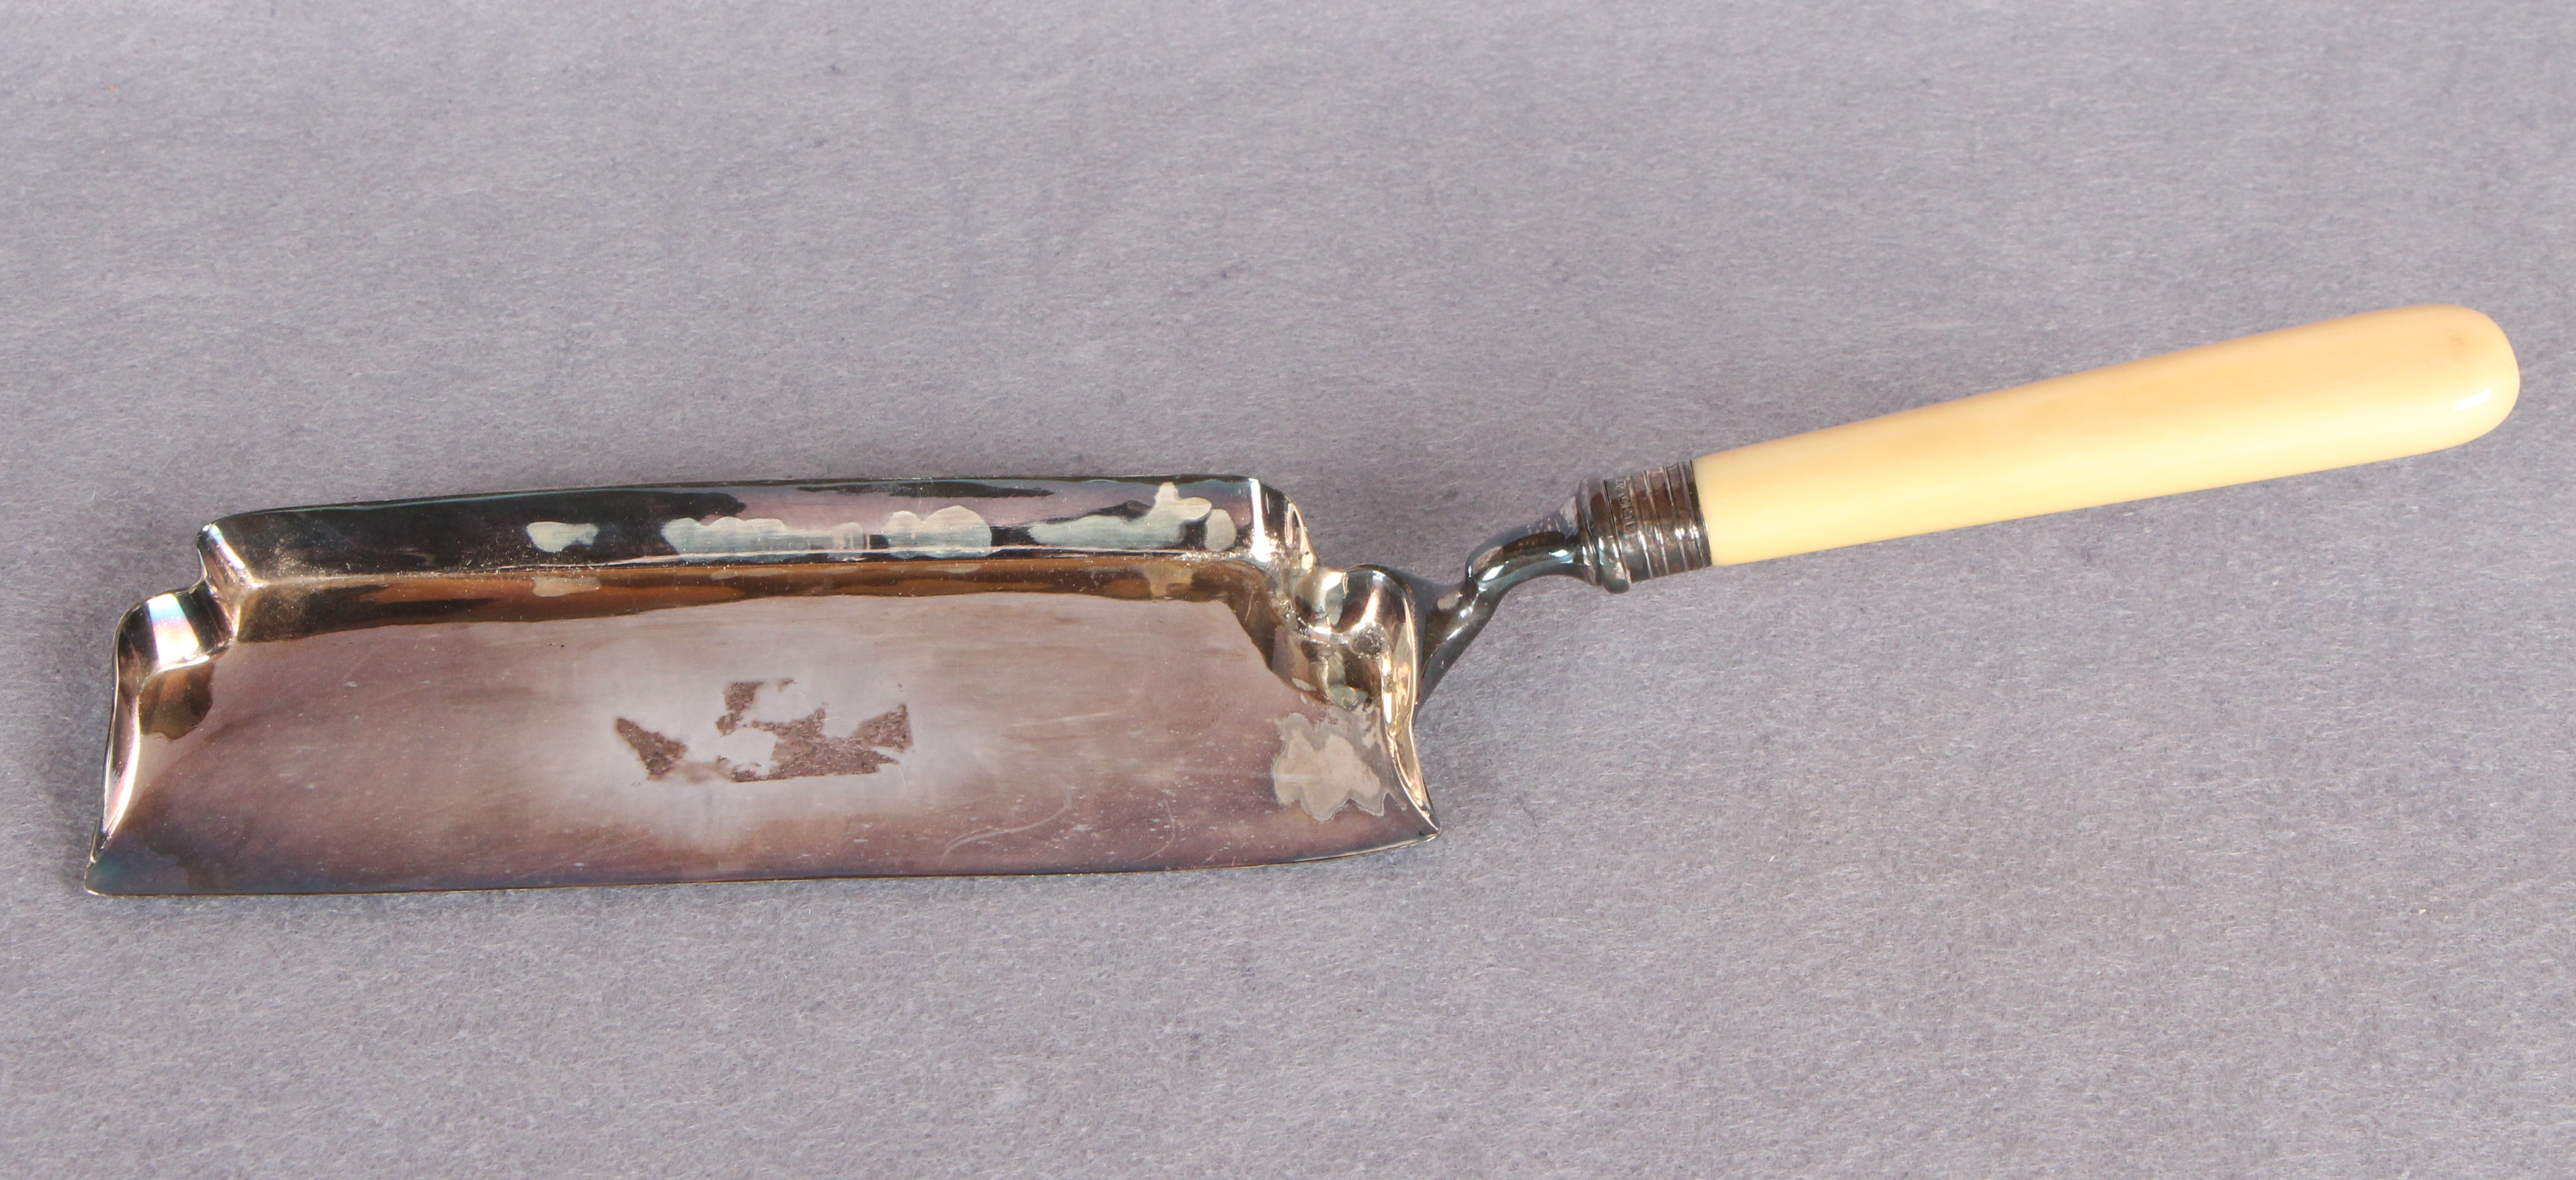 Lot 56 - A crumb scoop with plain ivory handle, Sheffield 1915 (approximate weight 5.